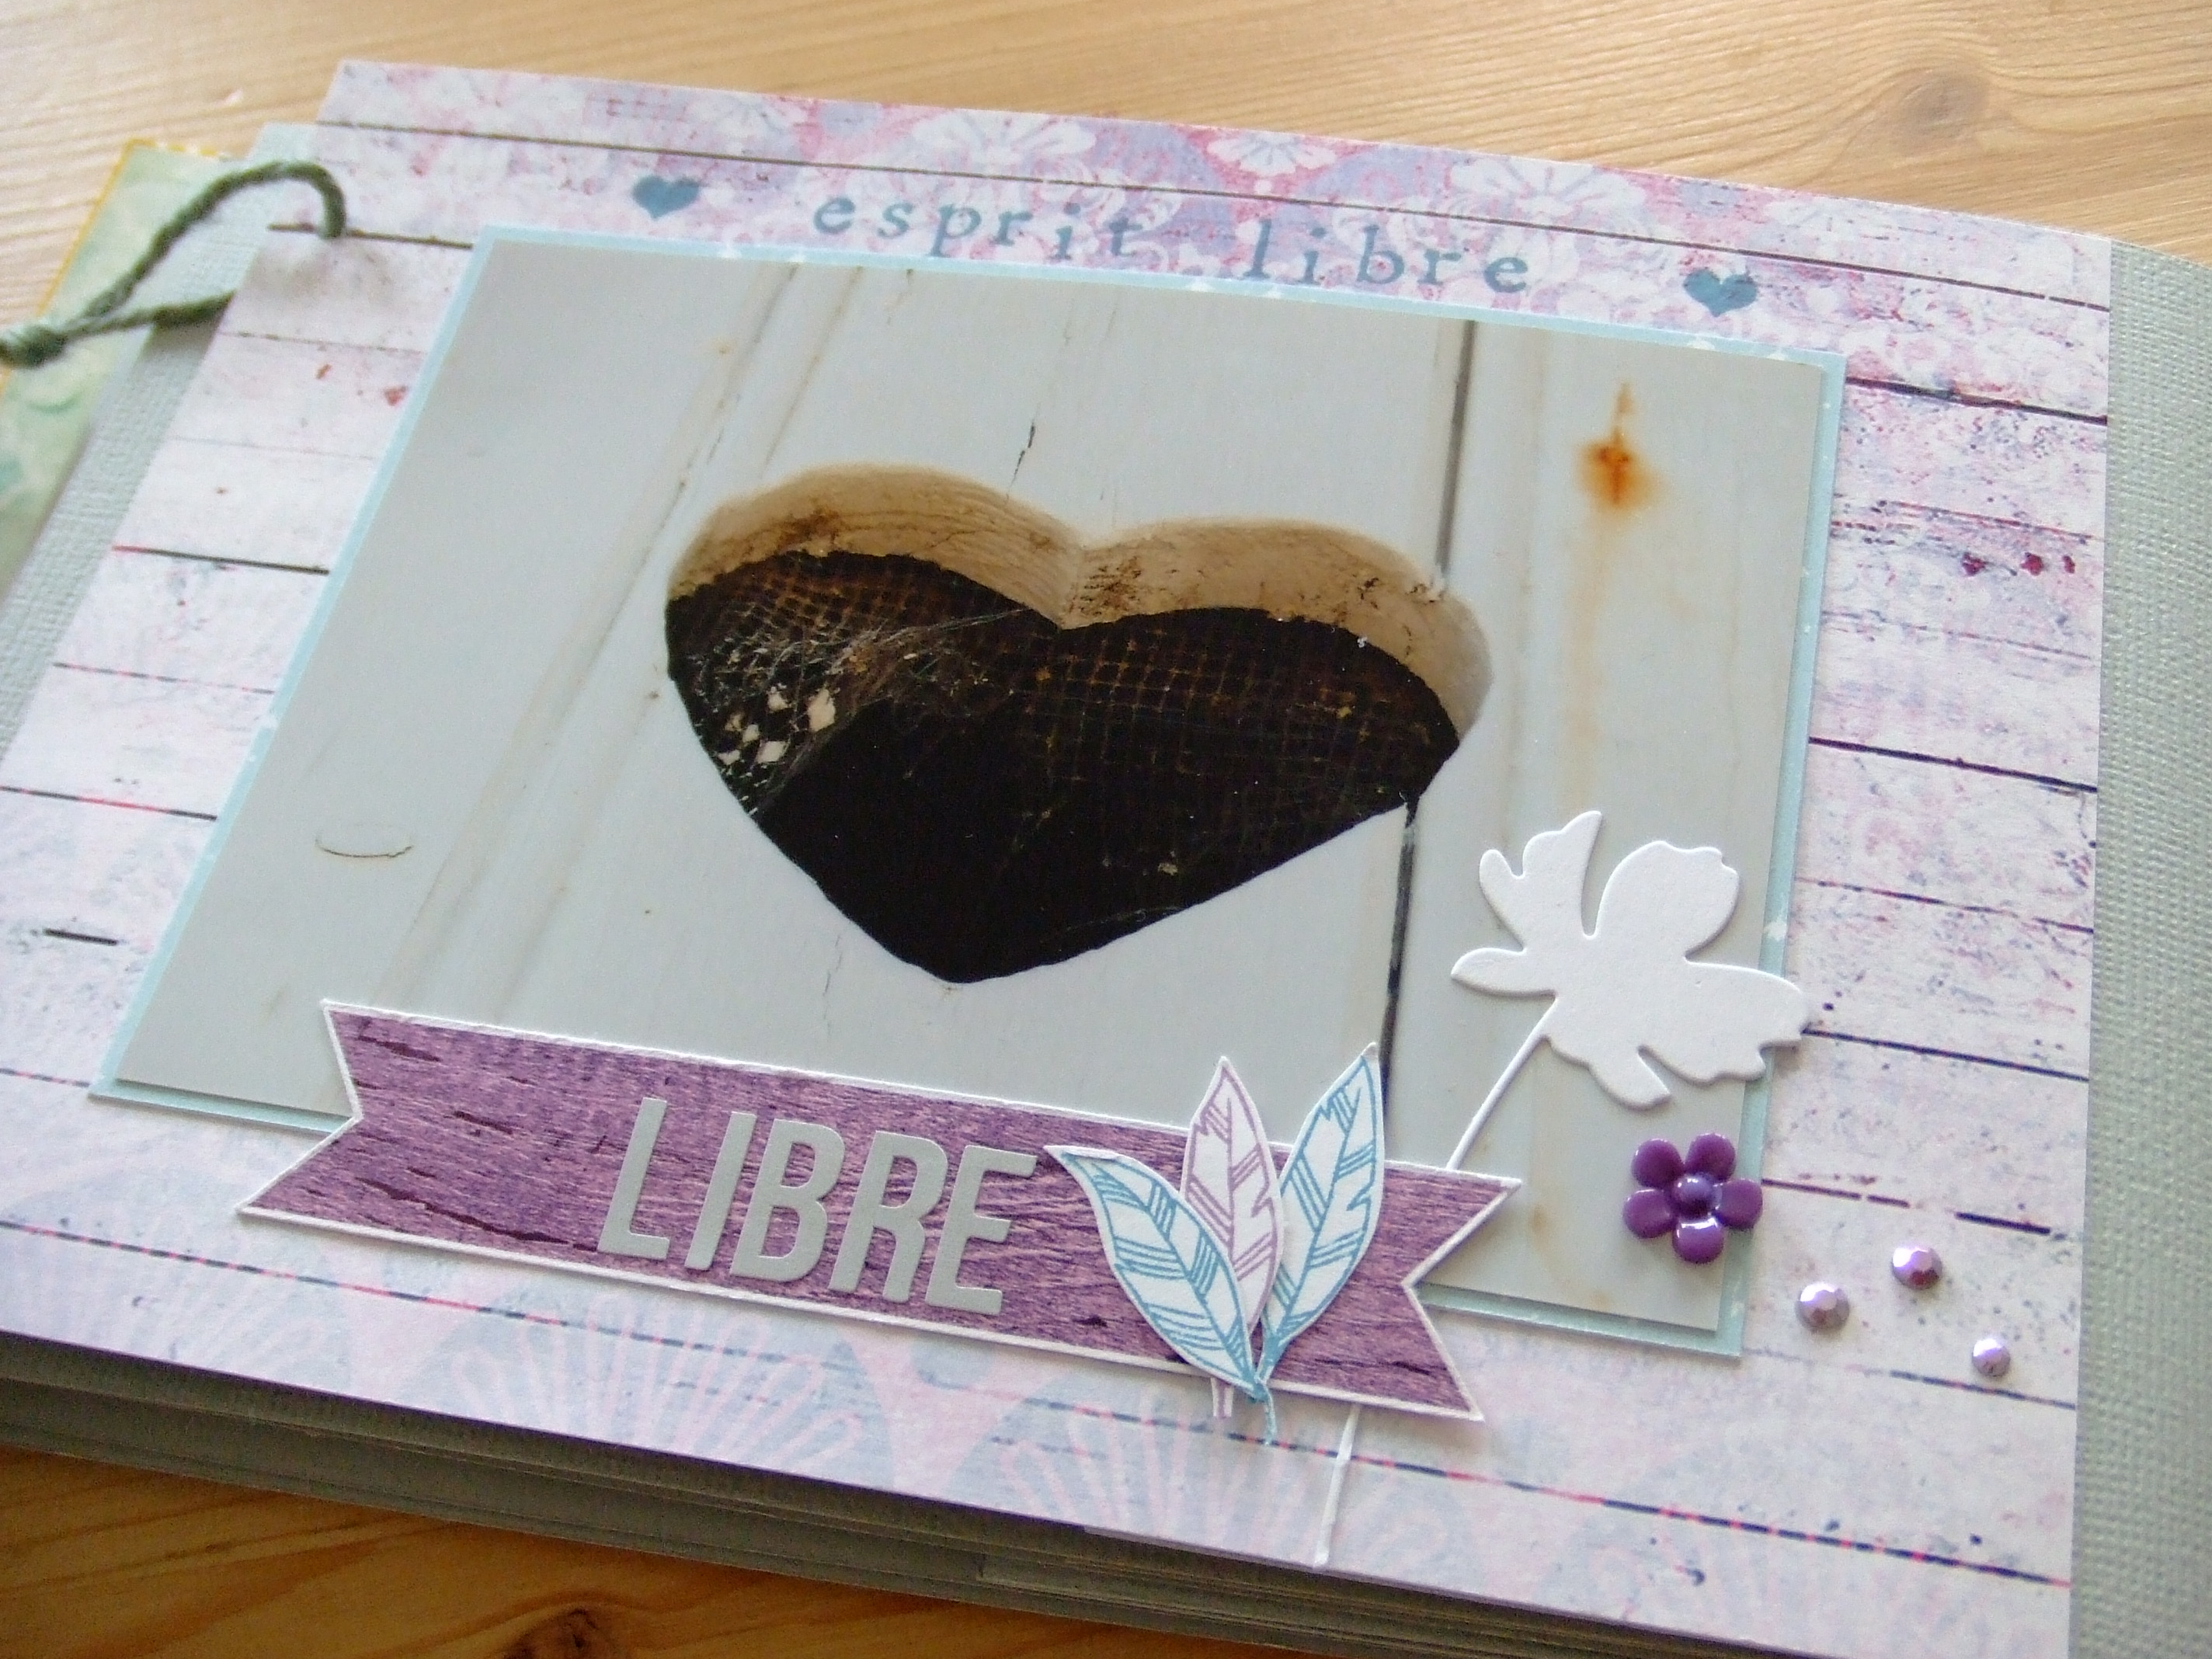 Vente en kit Un p'tit brin de Bohême mini-album scrap scrapbooking couleurs-en-folie papiers scrap-plaisir attrape-rêve